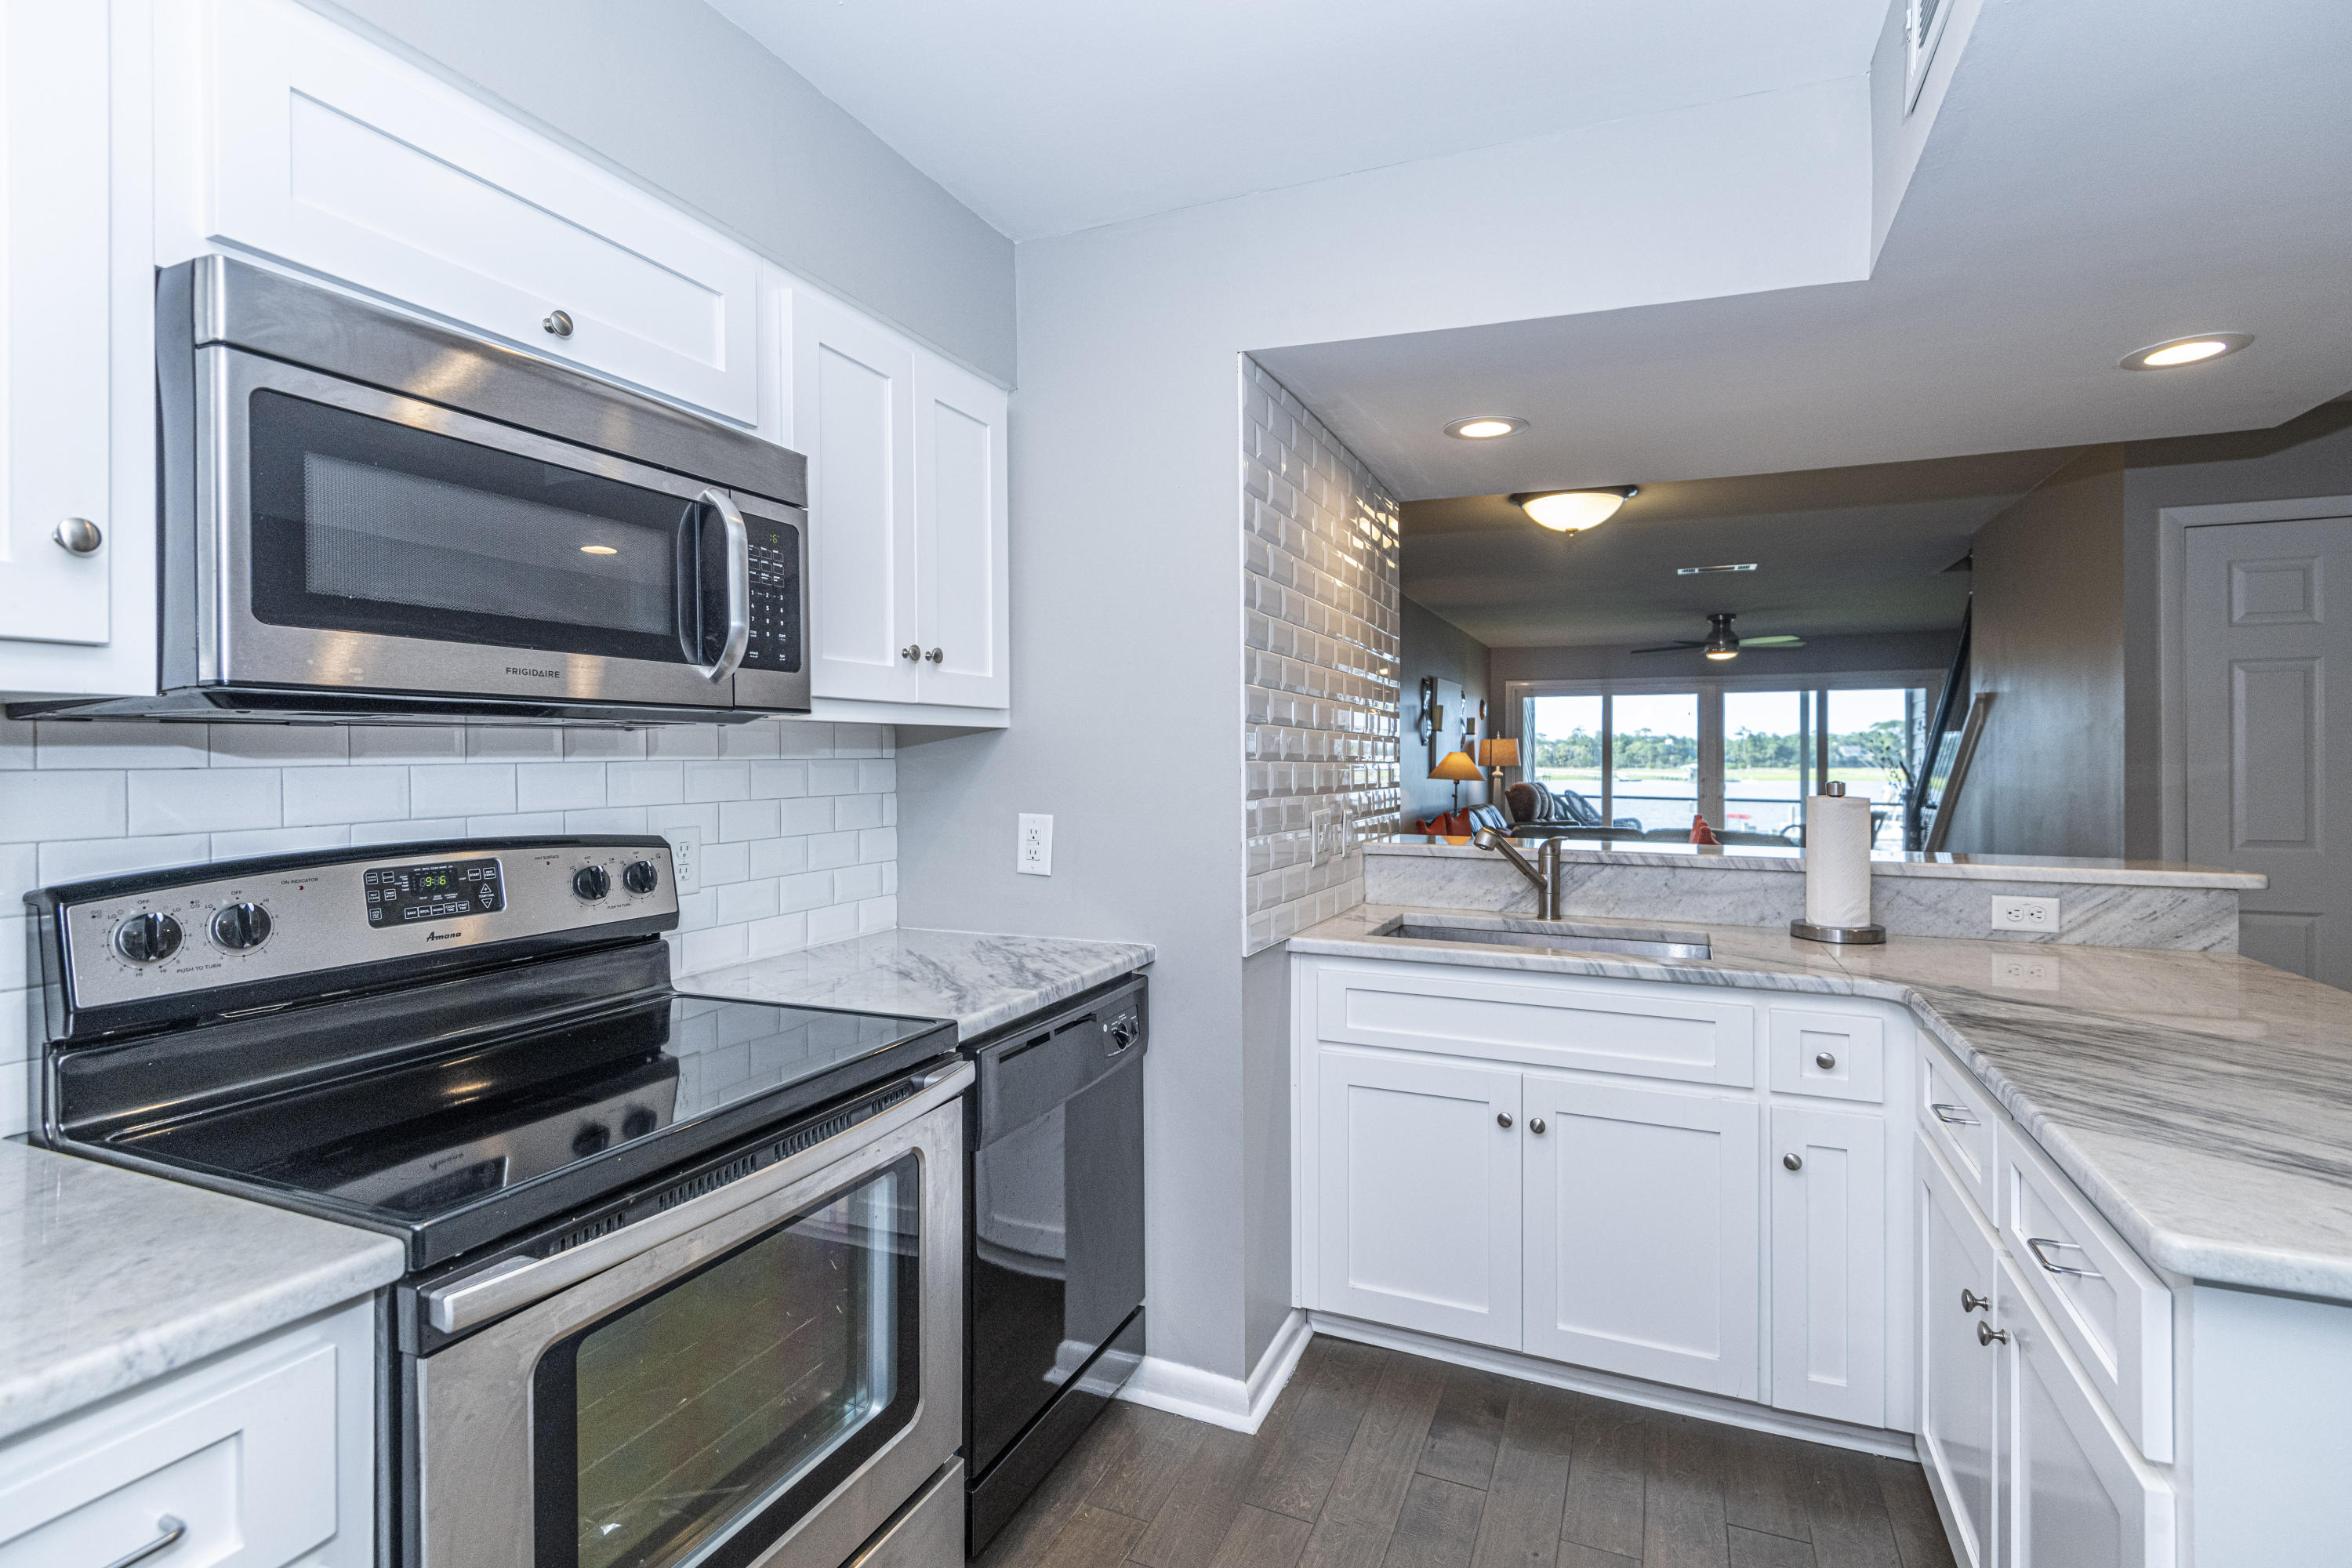 Mariners Cay Homes For Sale - 71 Mariners Cay, Folly Beach, SC - 4